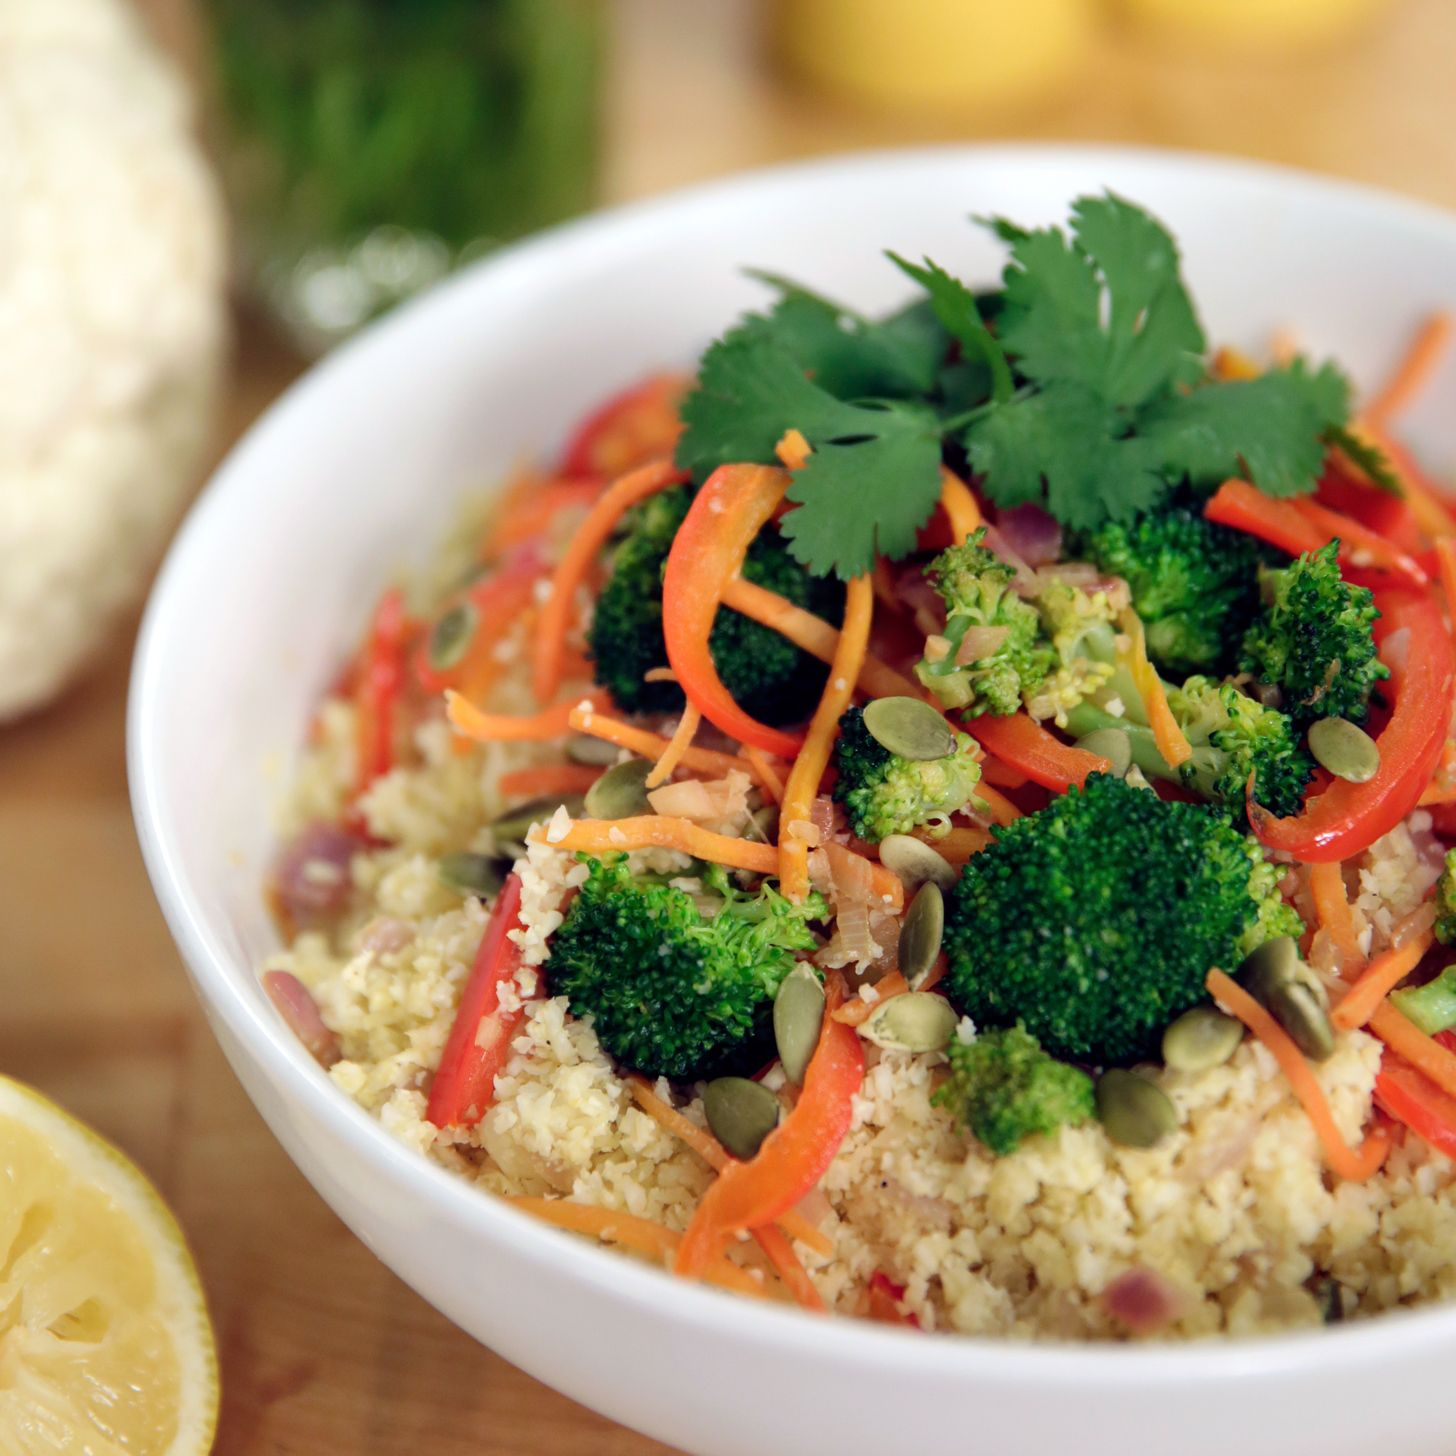 This cauliflower rice stir-fry is Paleo-friendly and lower in carbs than traditional stir-fry. Best of all, it tastes amazing!